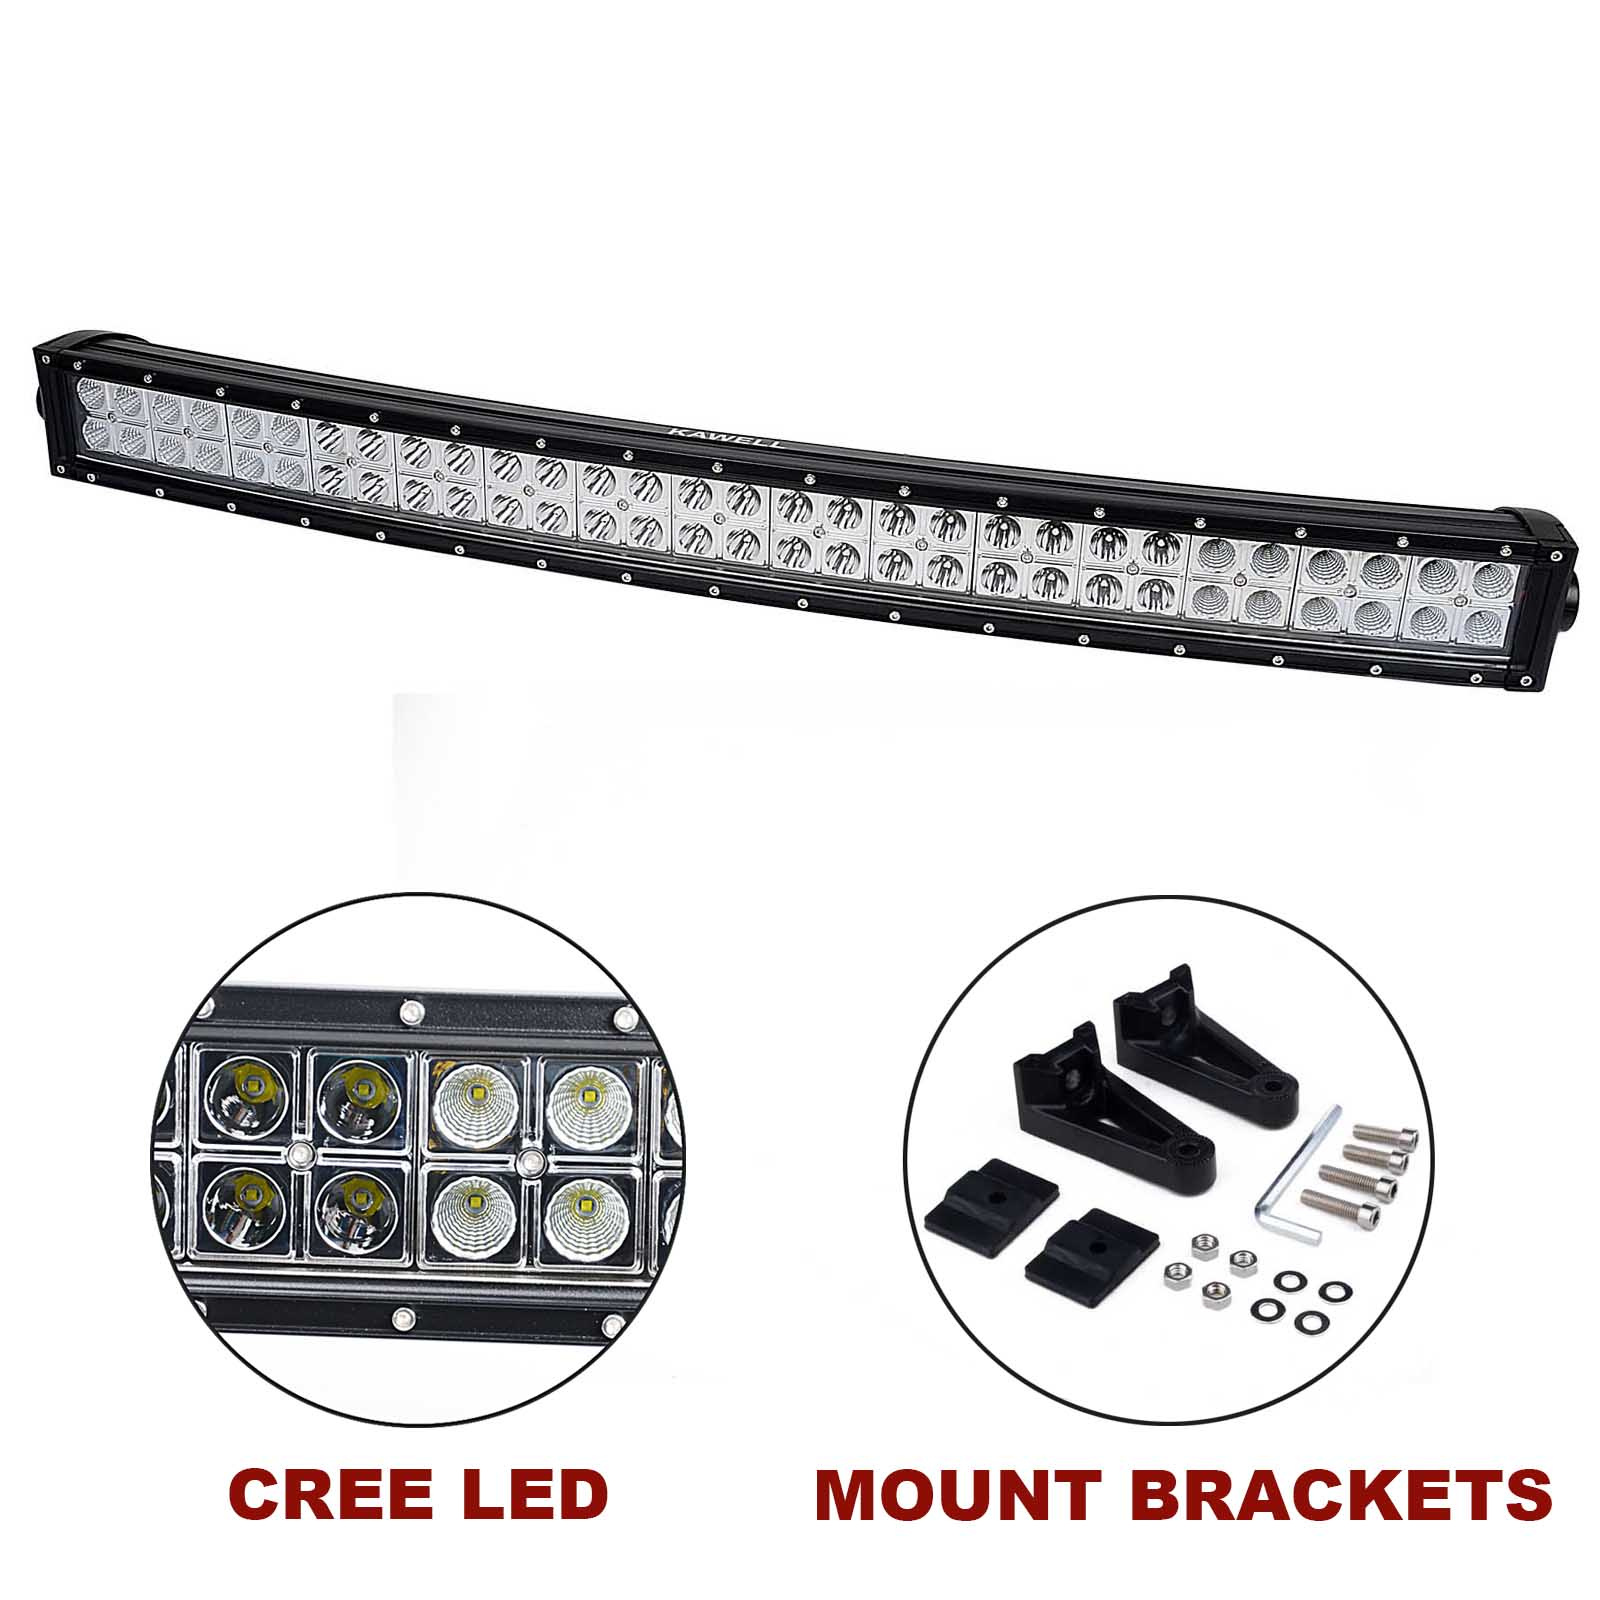 Kawell 32 180w Cree Curved Spot And Flood Combo Beam Led Light Bar Off Road Led Worklamp For